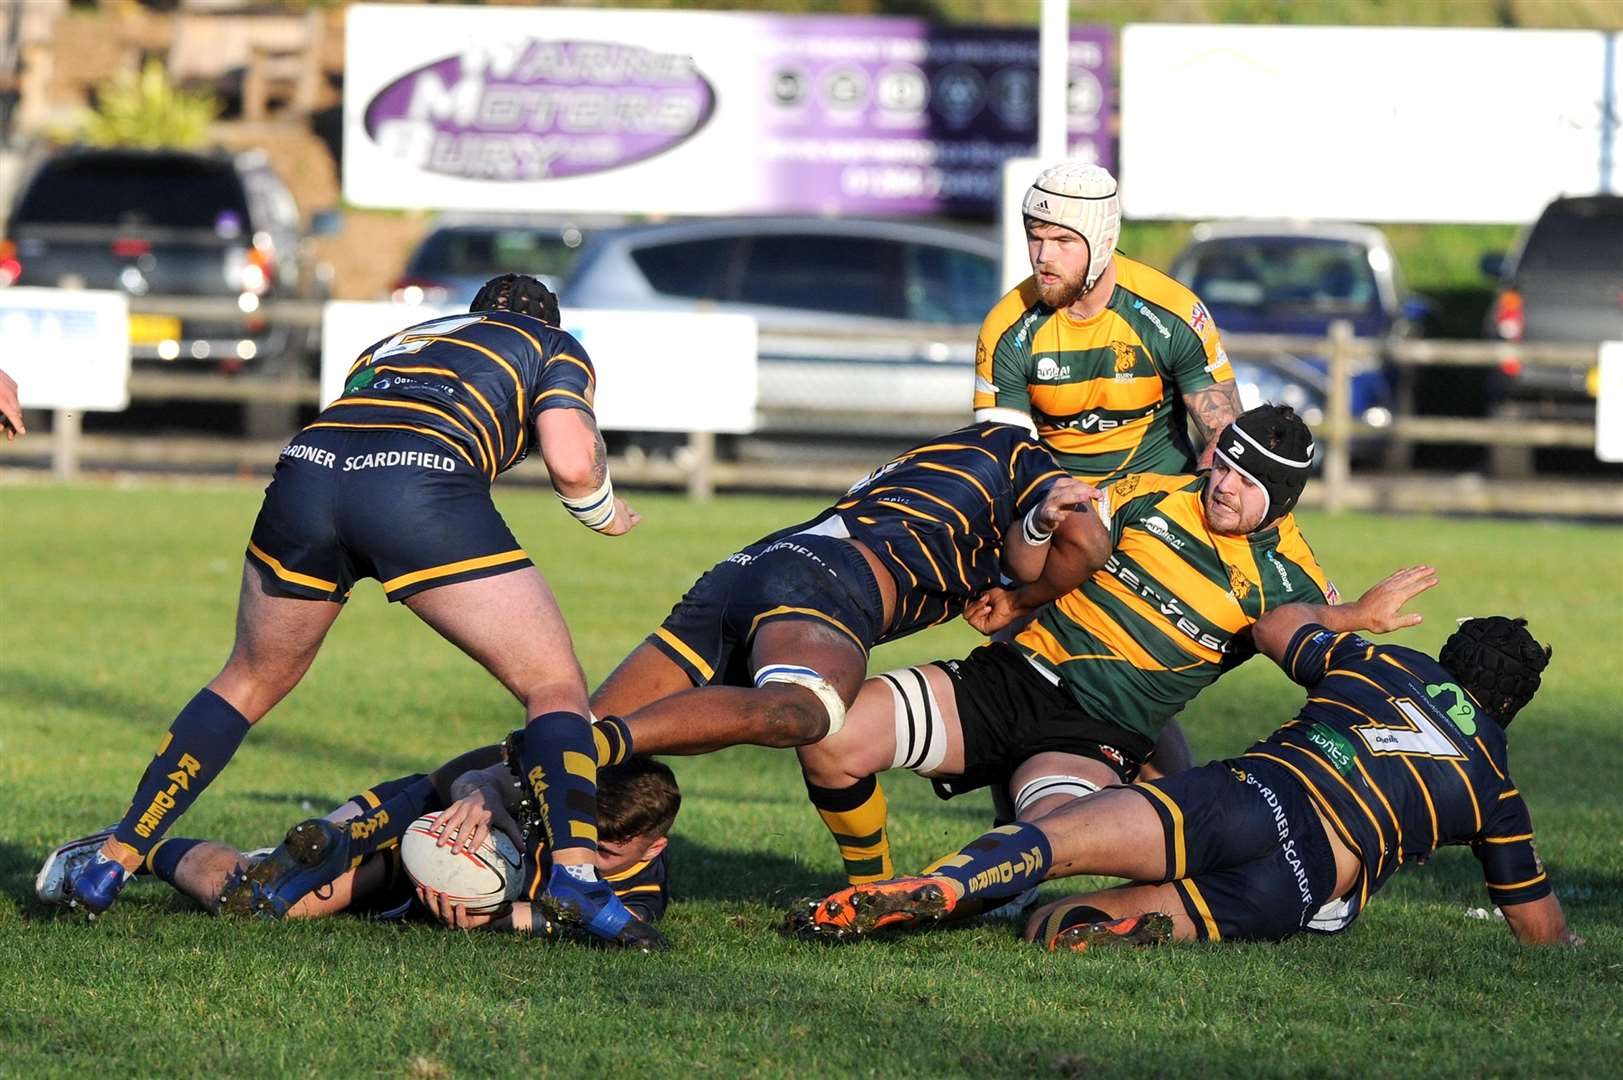 RUGBY - Bury St Edmunds v Worthing Raiders...Pictured: ....PICTURE: Mecha Morton... .. (5191869)